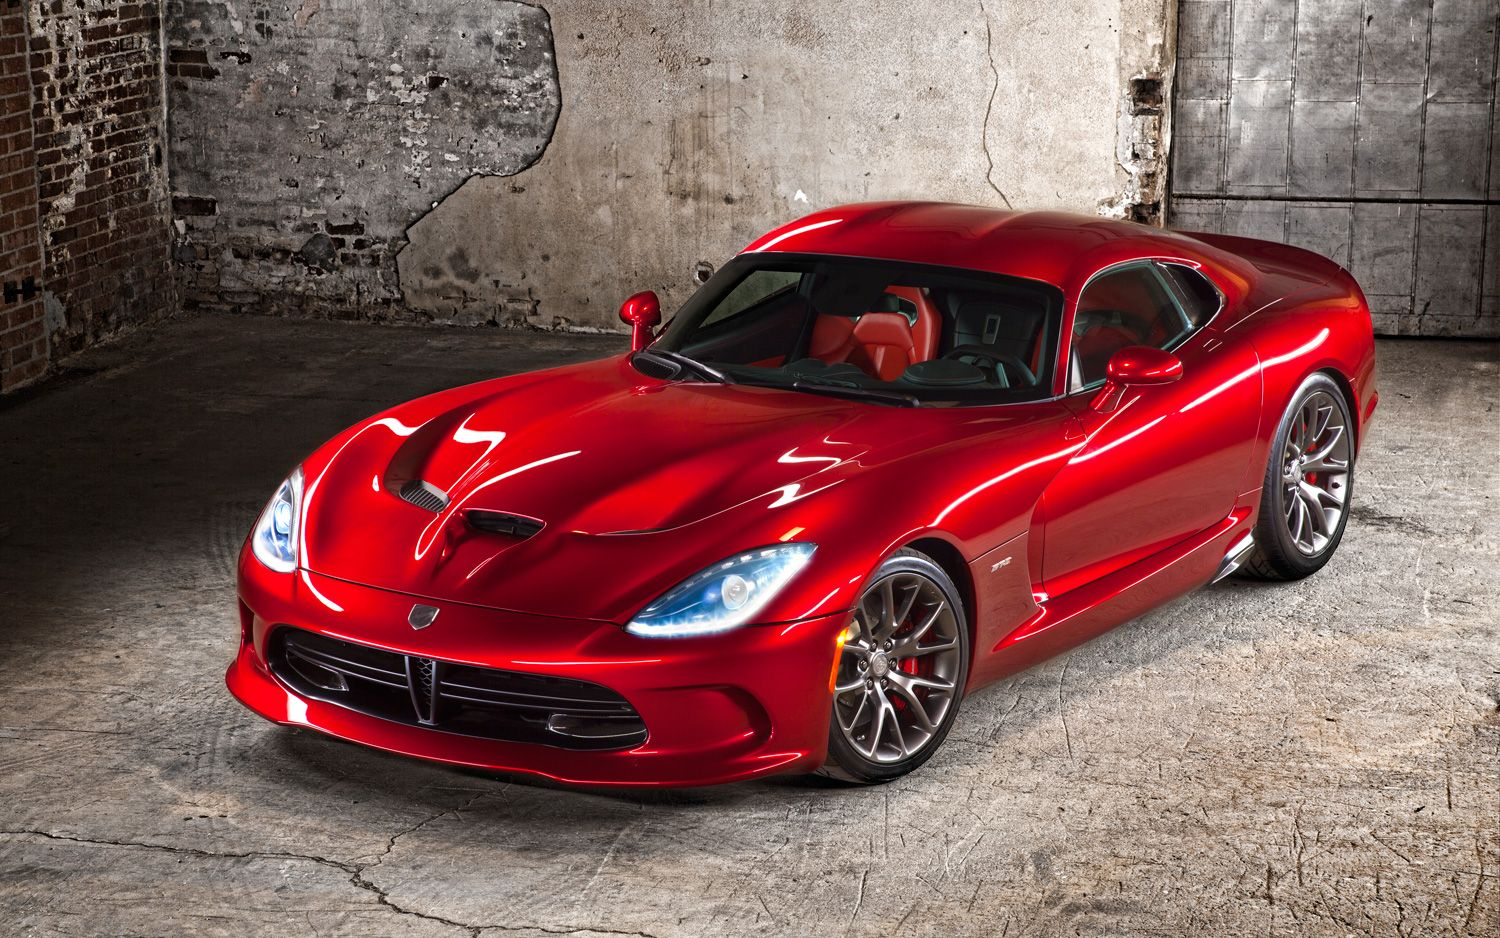 2015 Dodge Viper Wallpapers HD 1500x938 34345 KB 1500x938